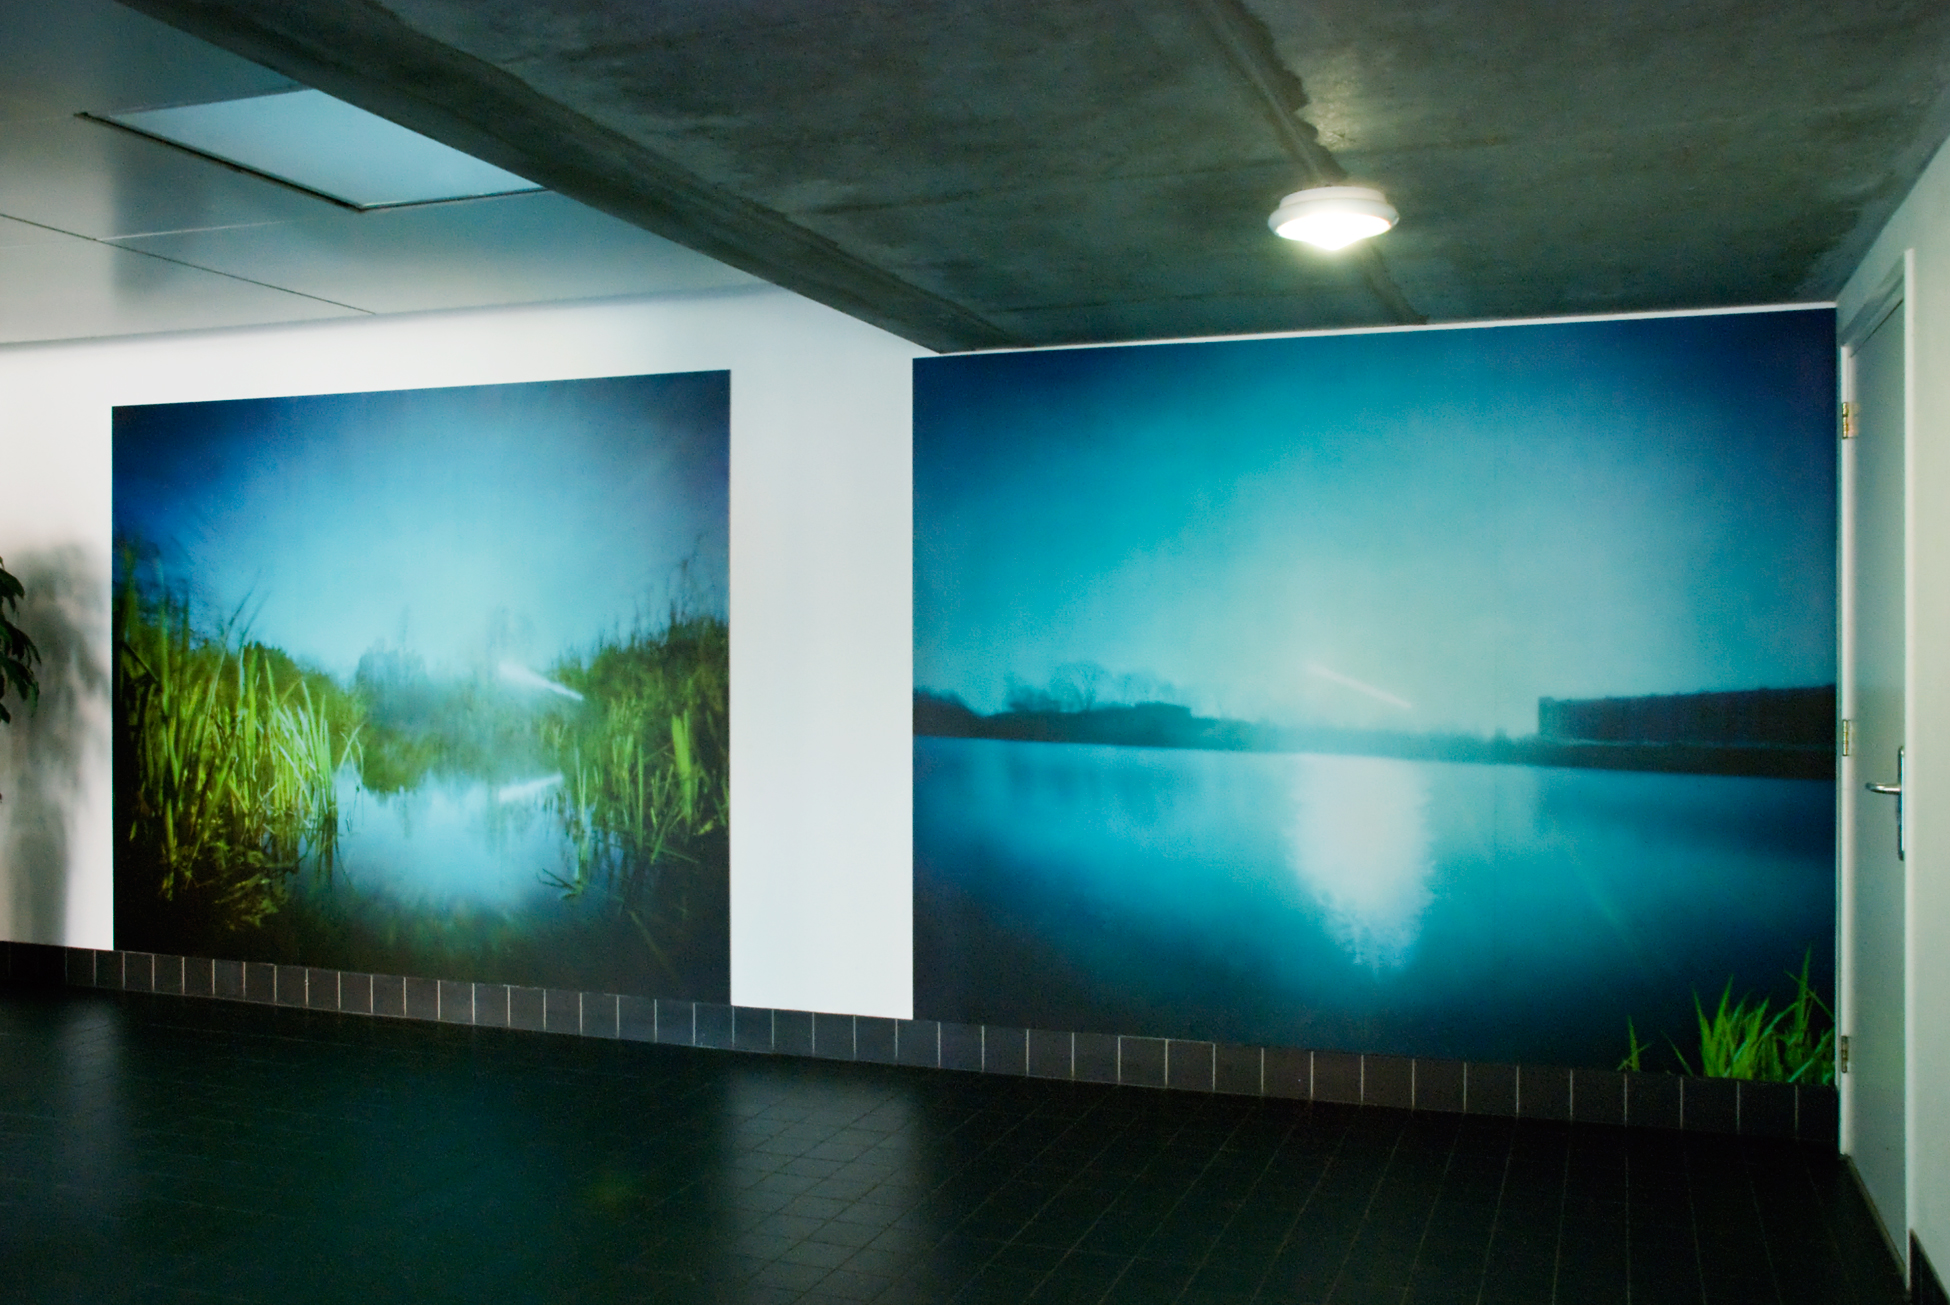 Pinhole Photography by Corine Hörmann